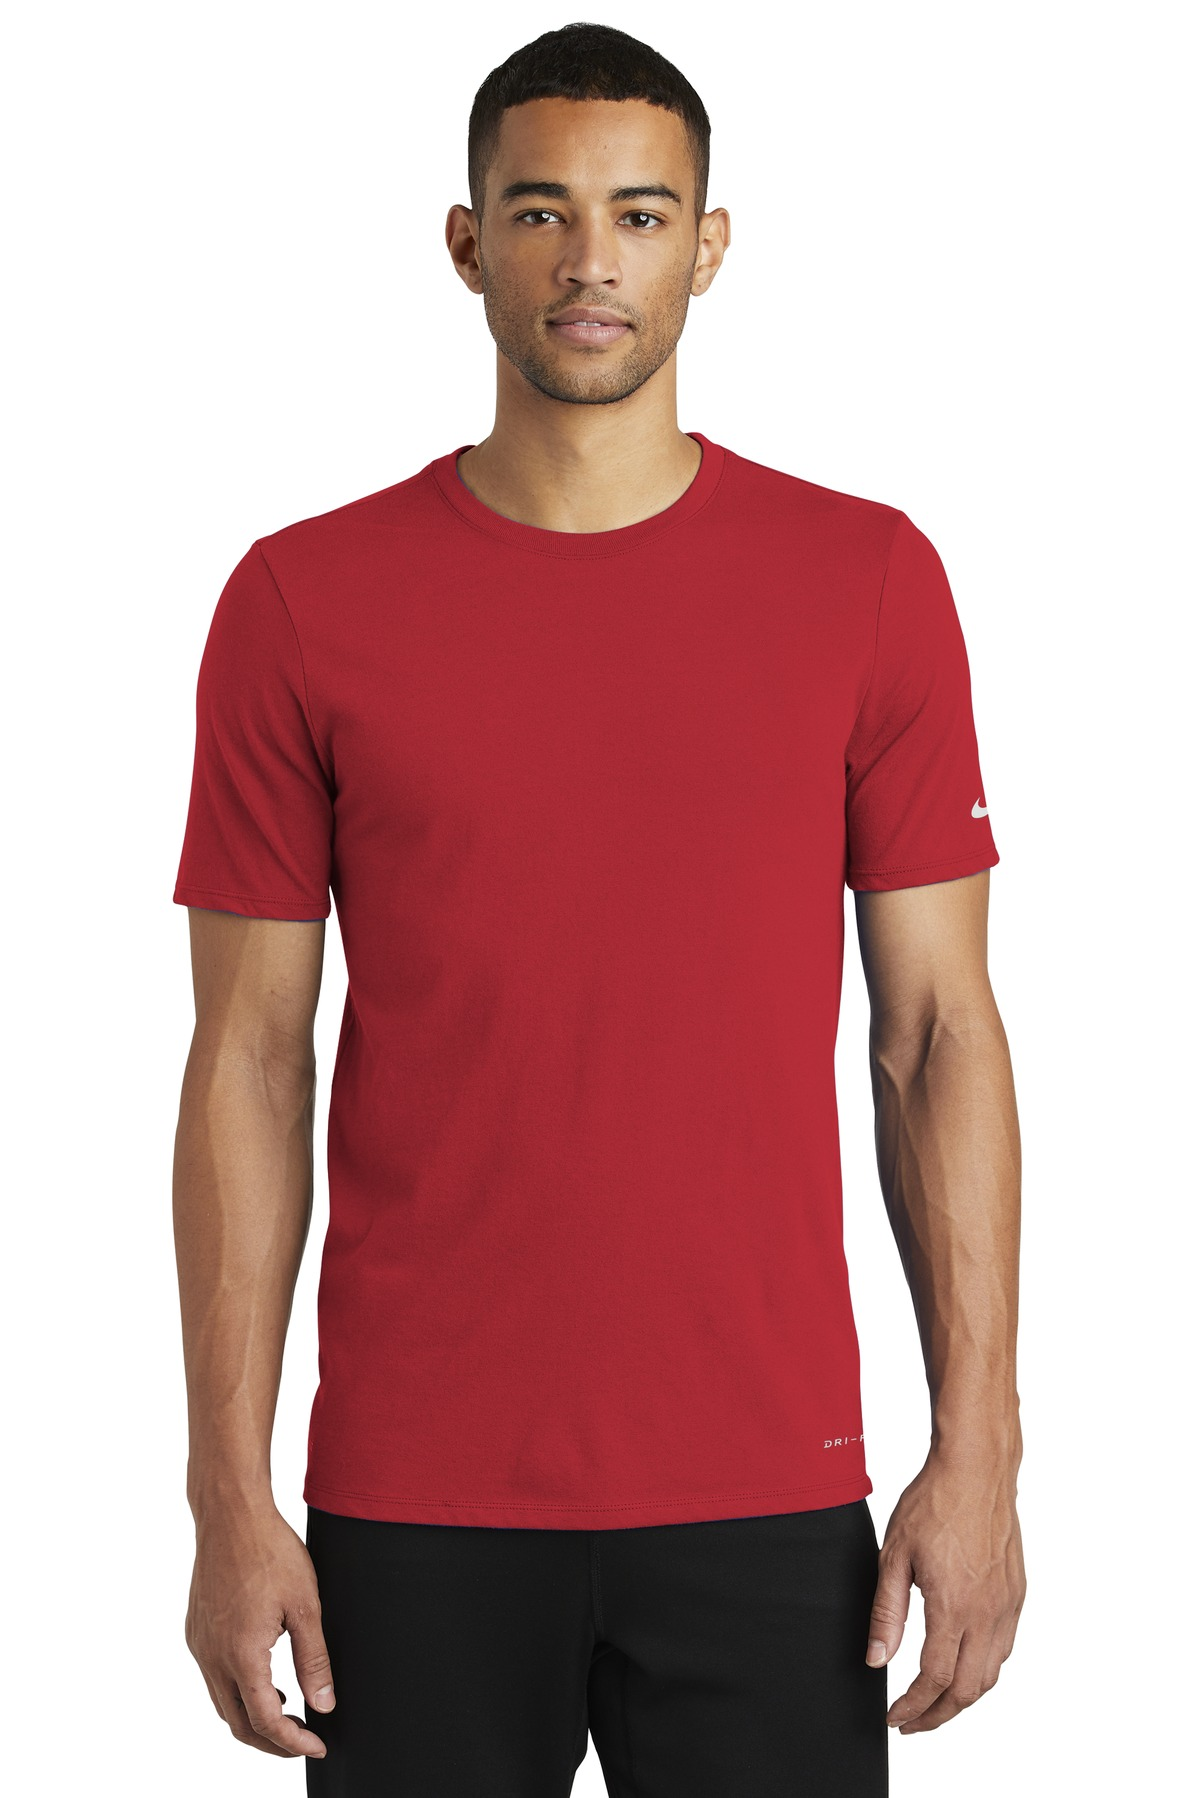 Nike Dri-FIT Cotton/Poly Tee. NKBQ5231 - Gym Red